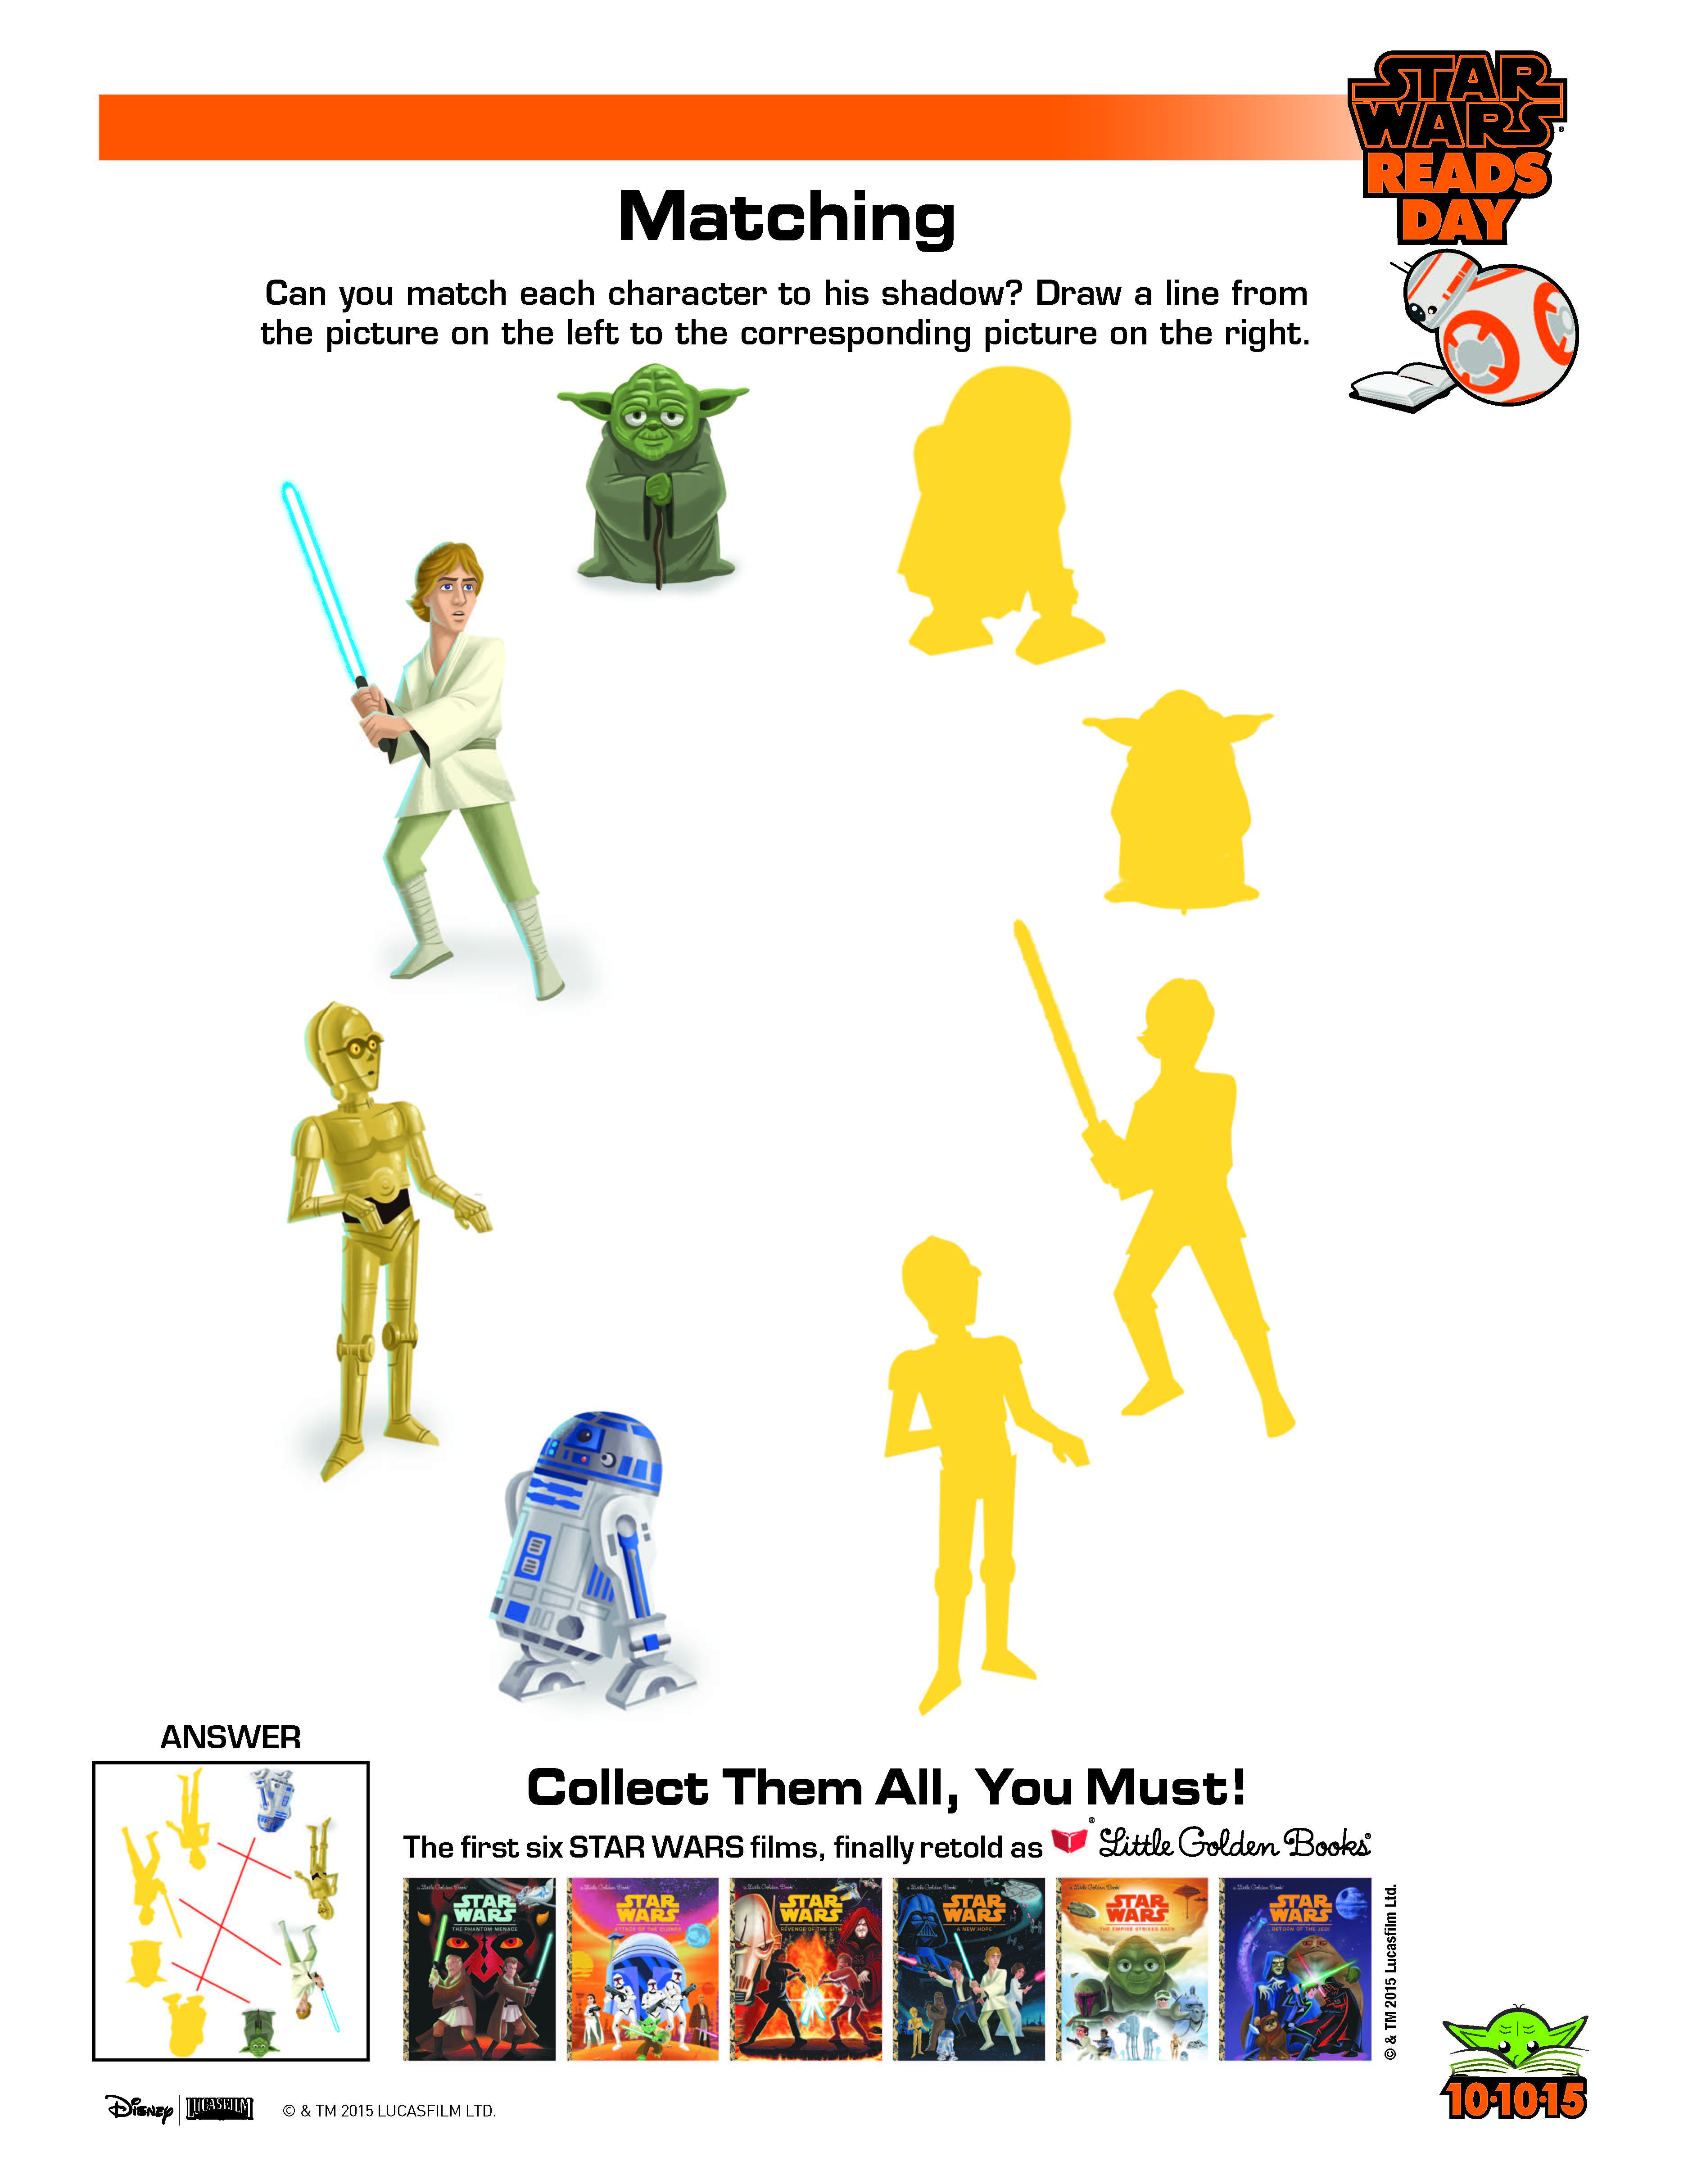 Star Wars Matching Activity